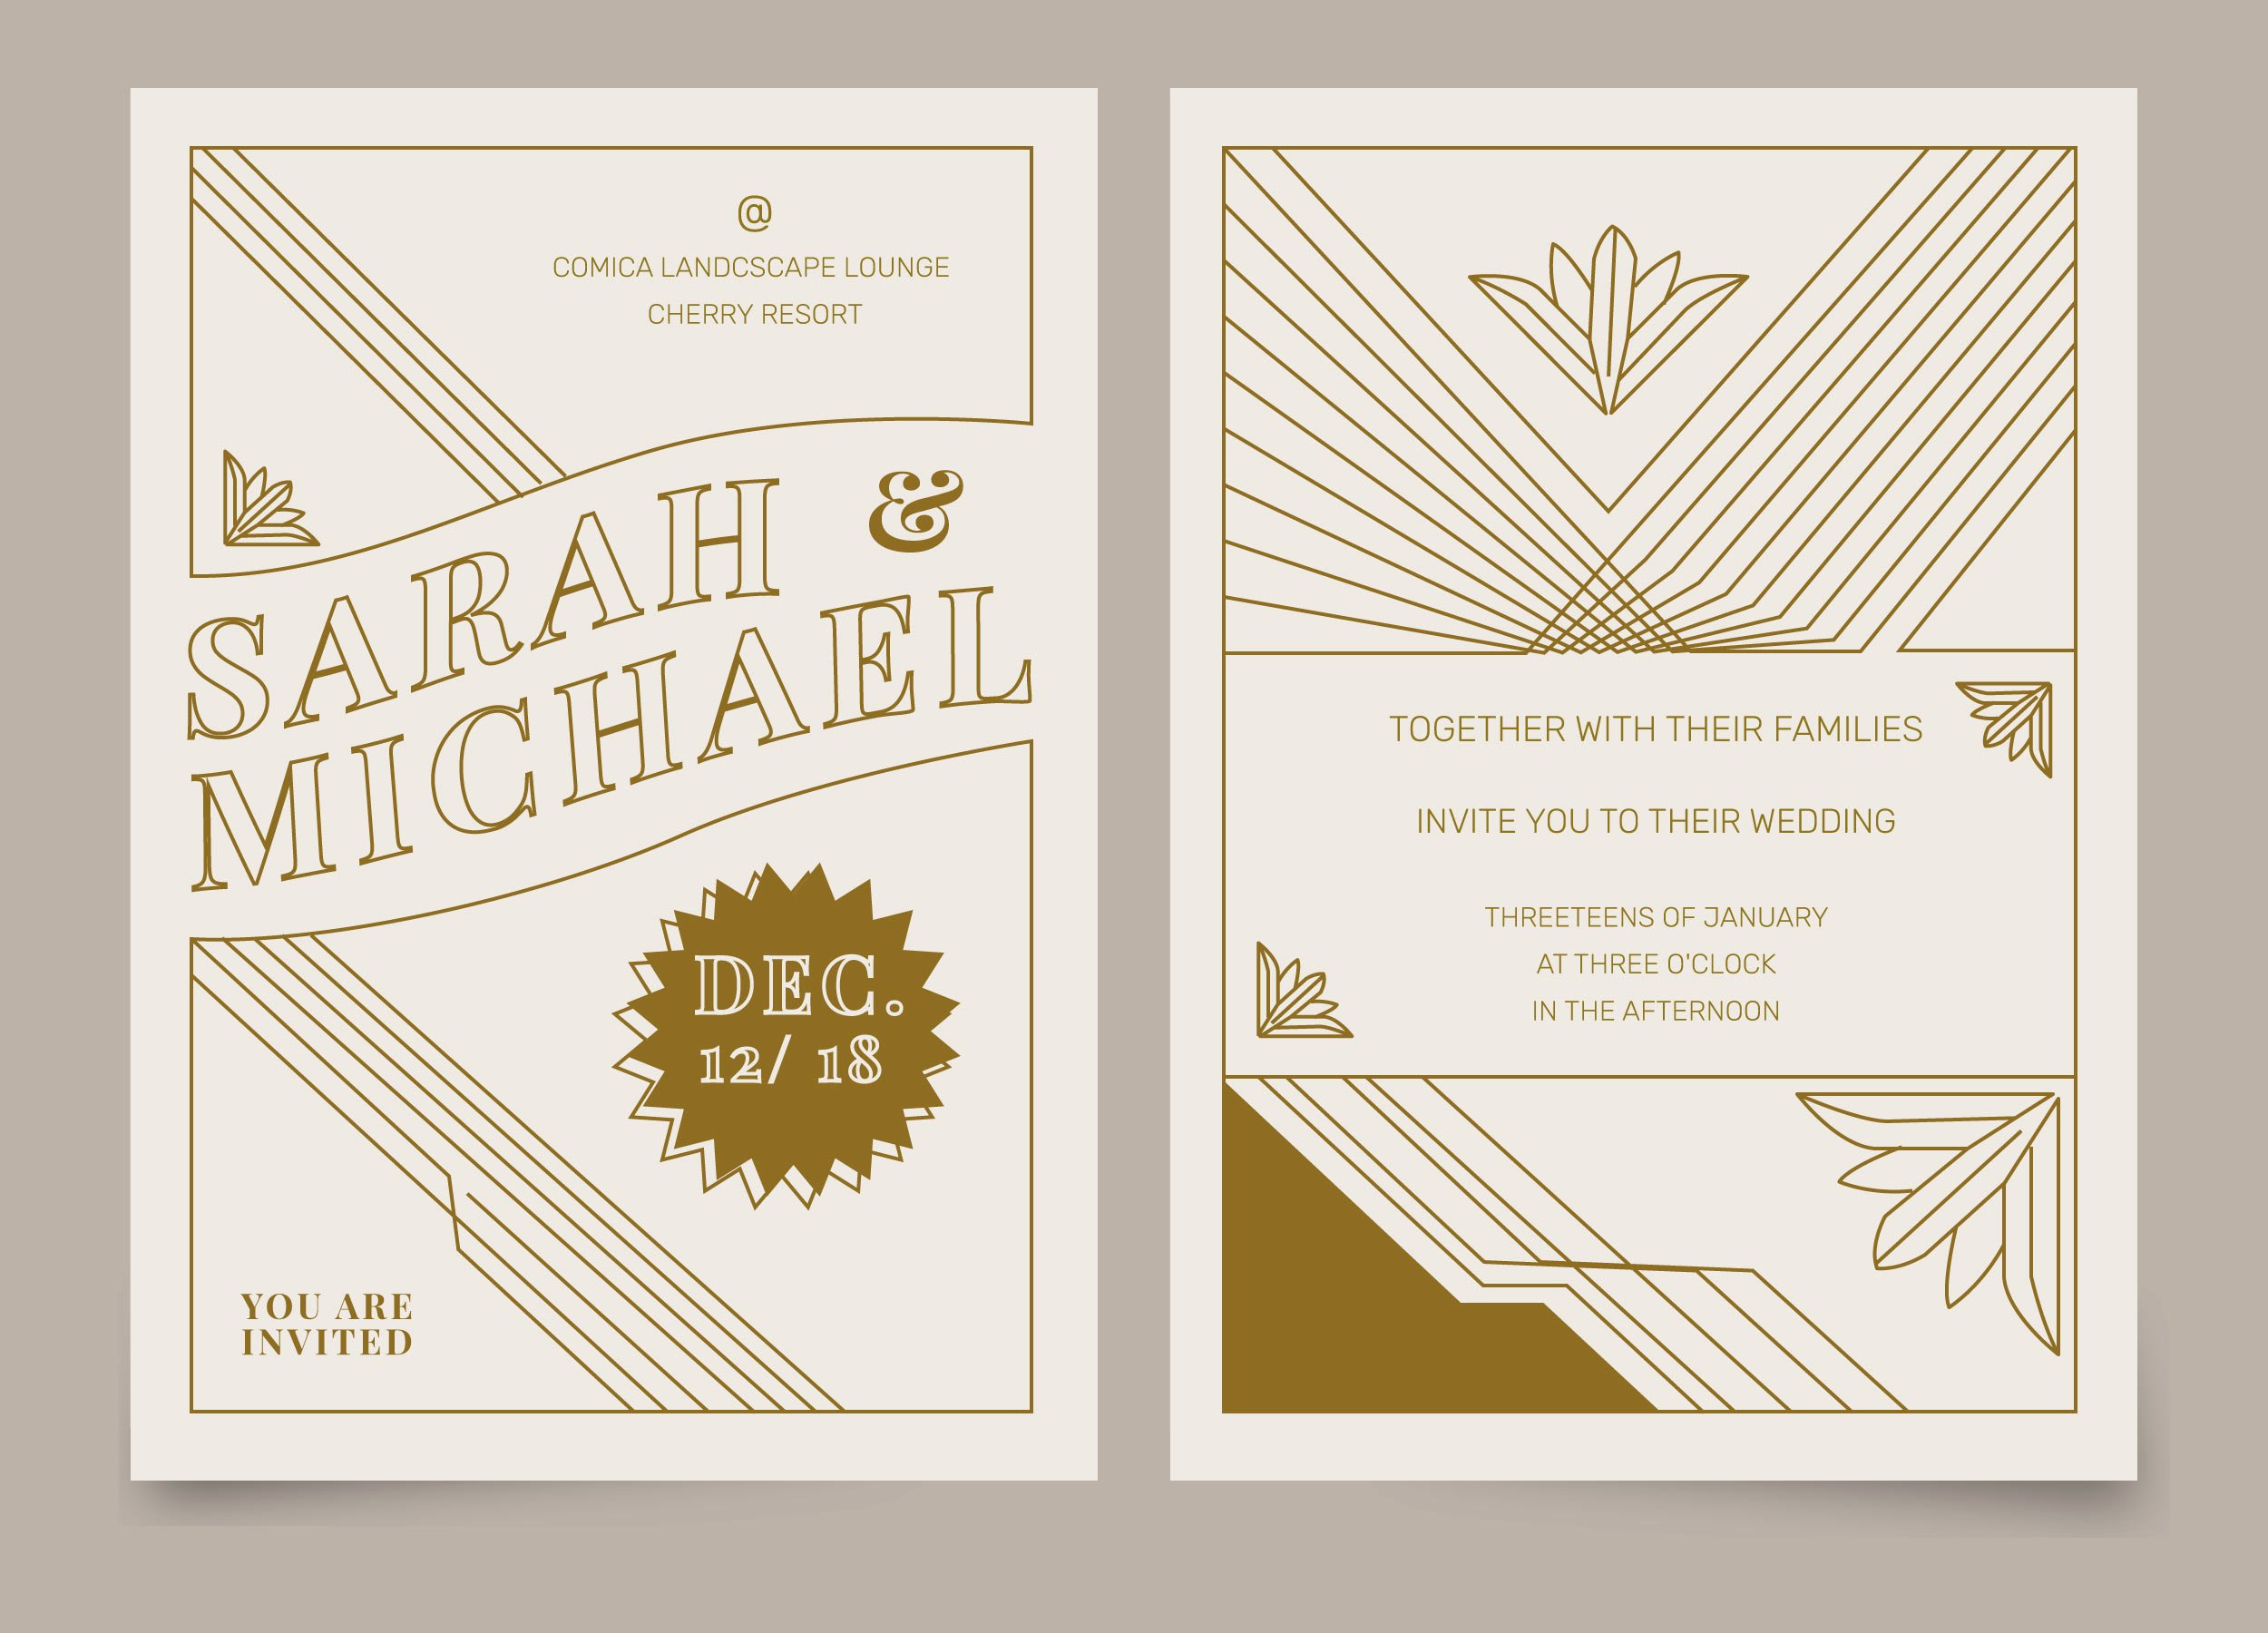 Art Deco Invitation Template Lovely Brown Vintage Art Deco Hochzeitseinladungs Vektor